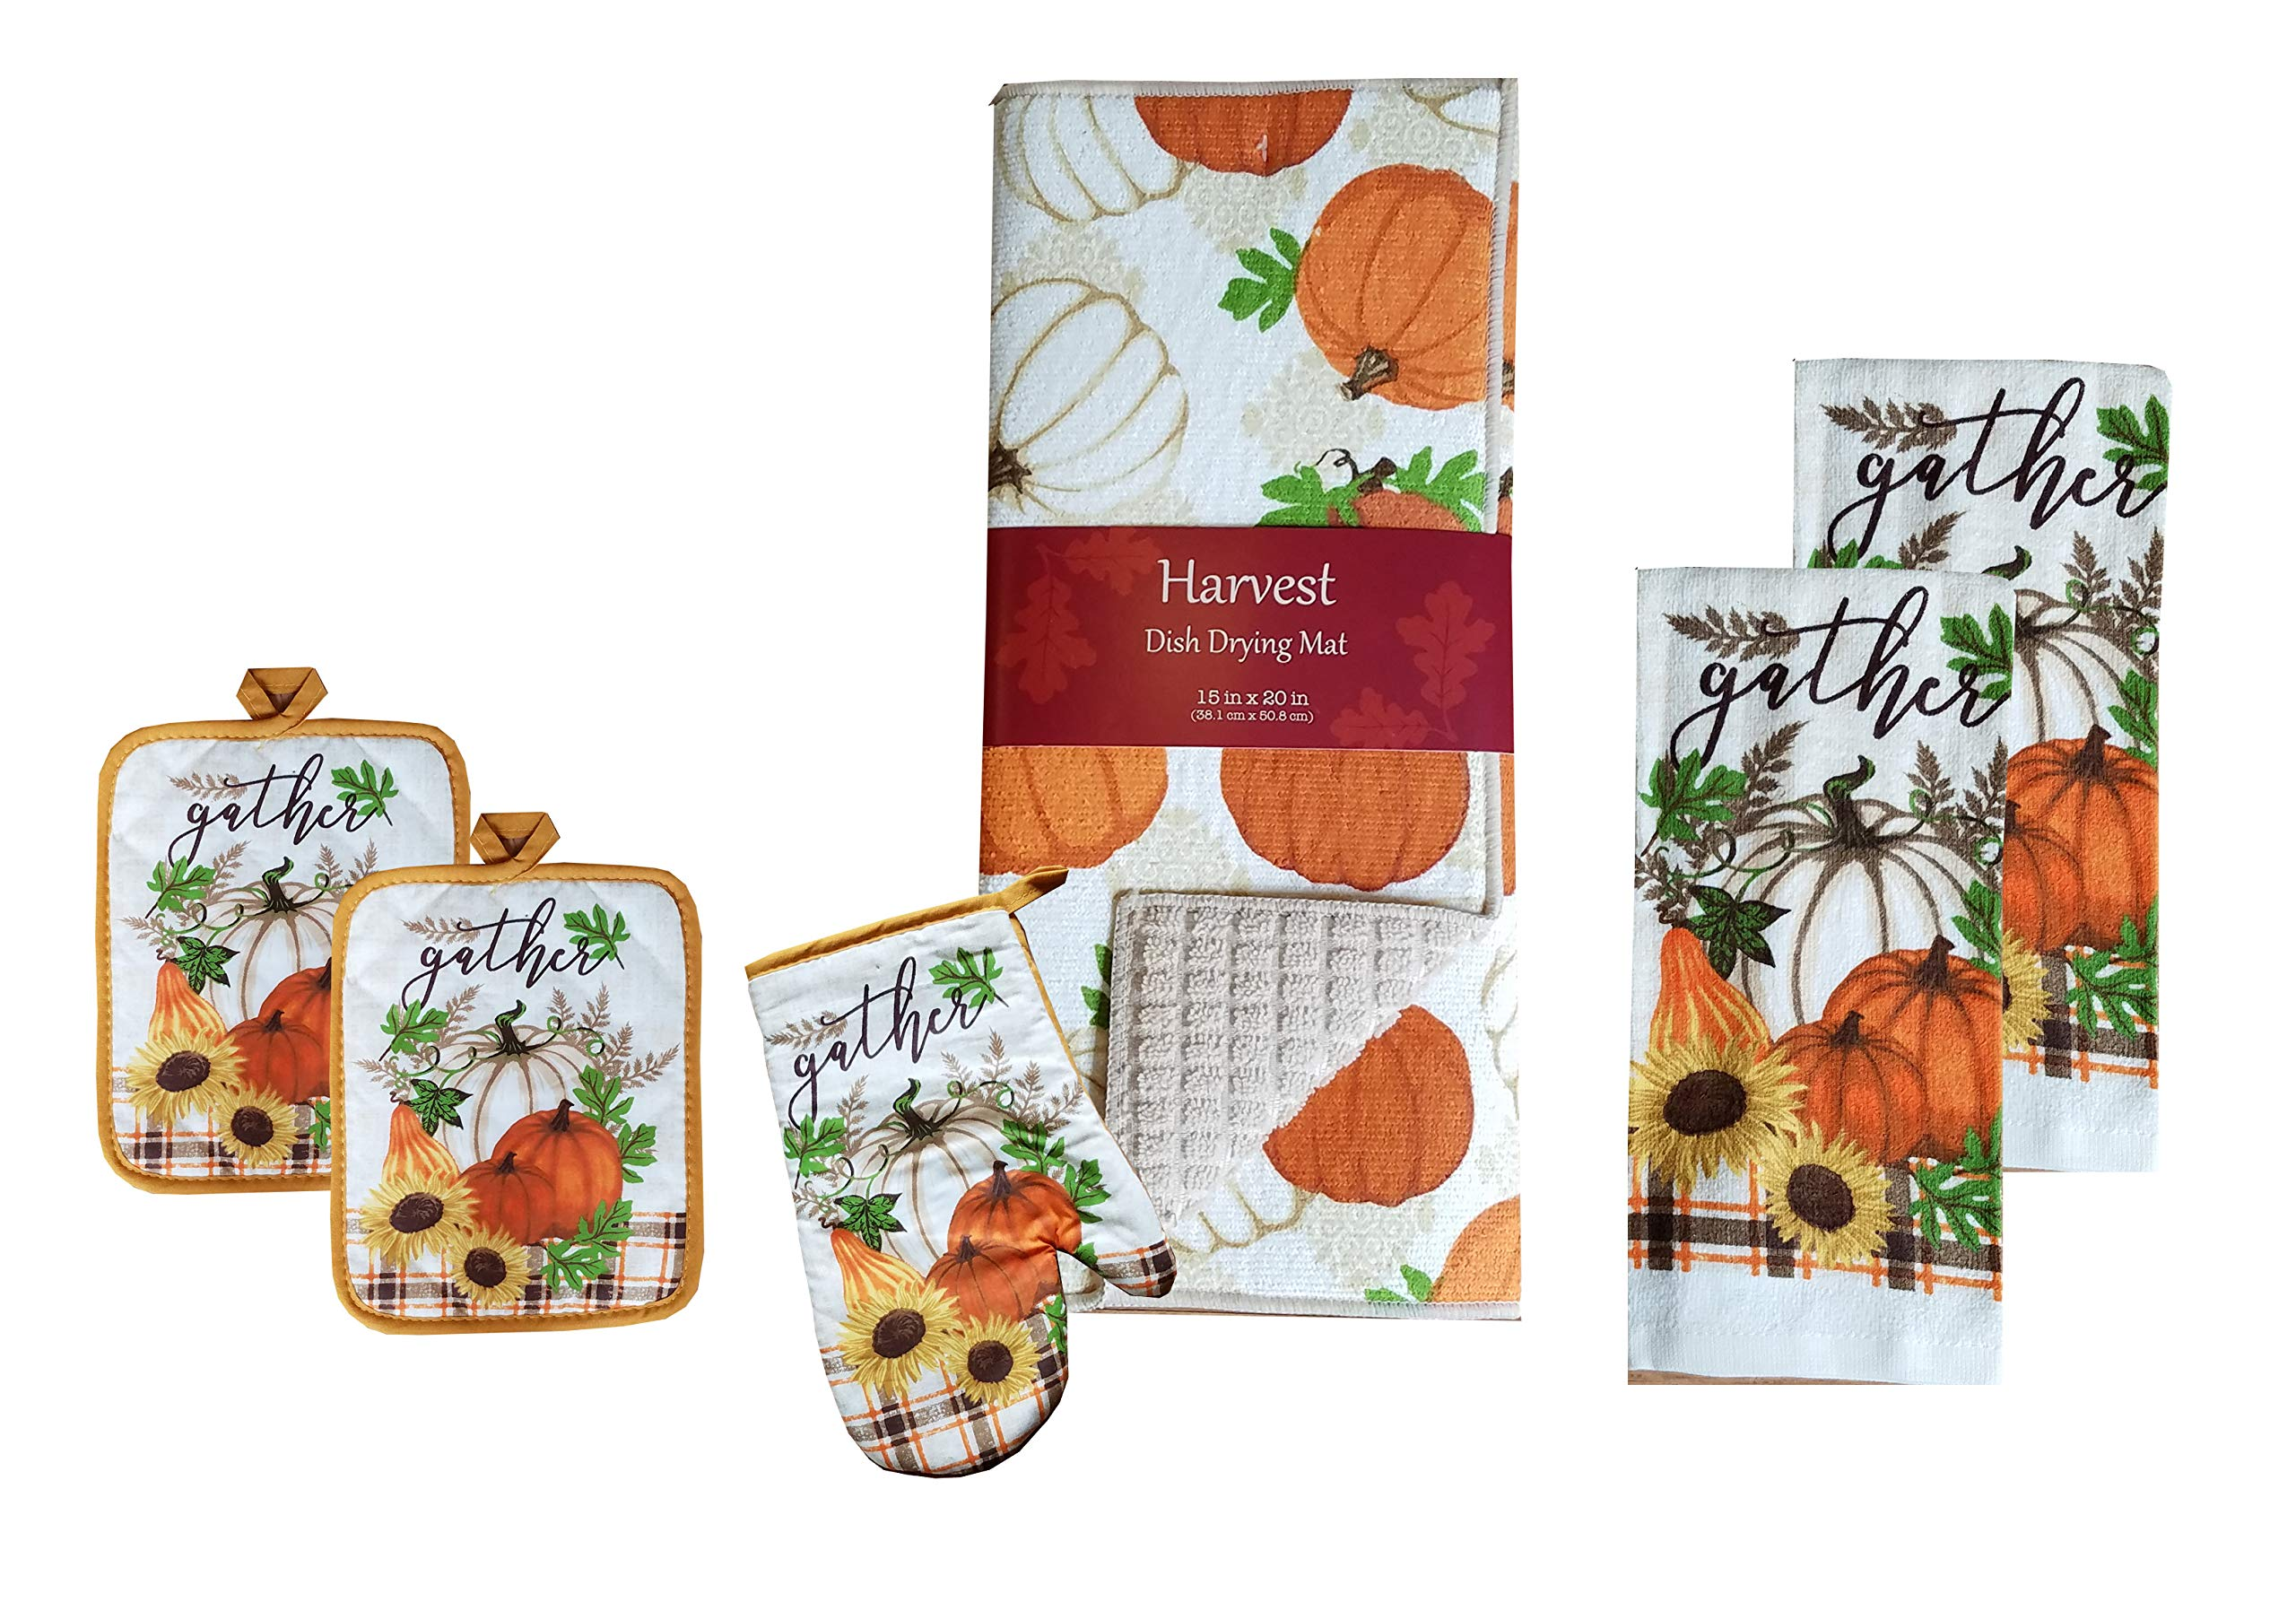 Fall Pumpkins, Sunflowers Kitchen Linens - Two Towels, 1 Oven Mitt, 2 Potholders, 1 Dish Drying Mat - 6 Piece Set